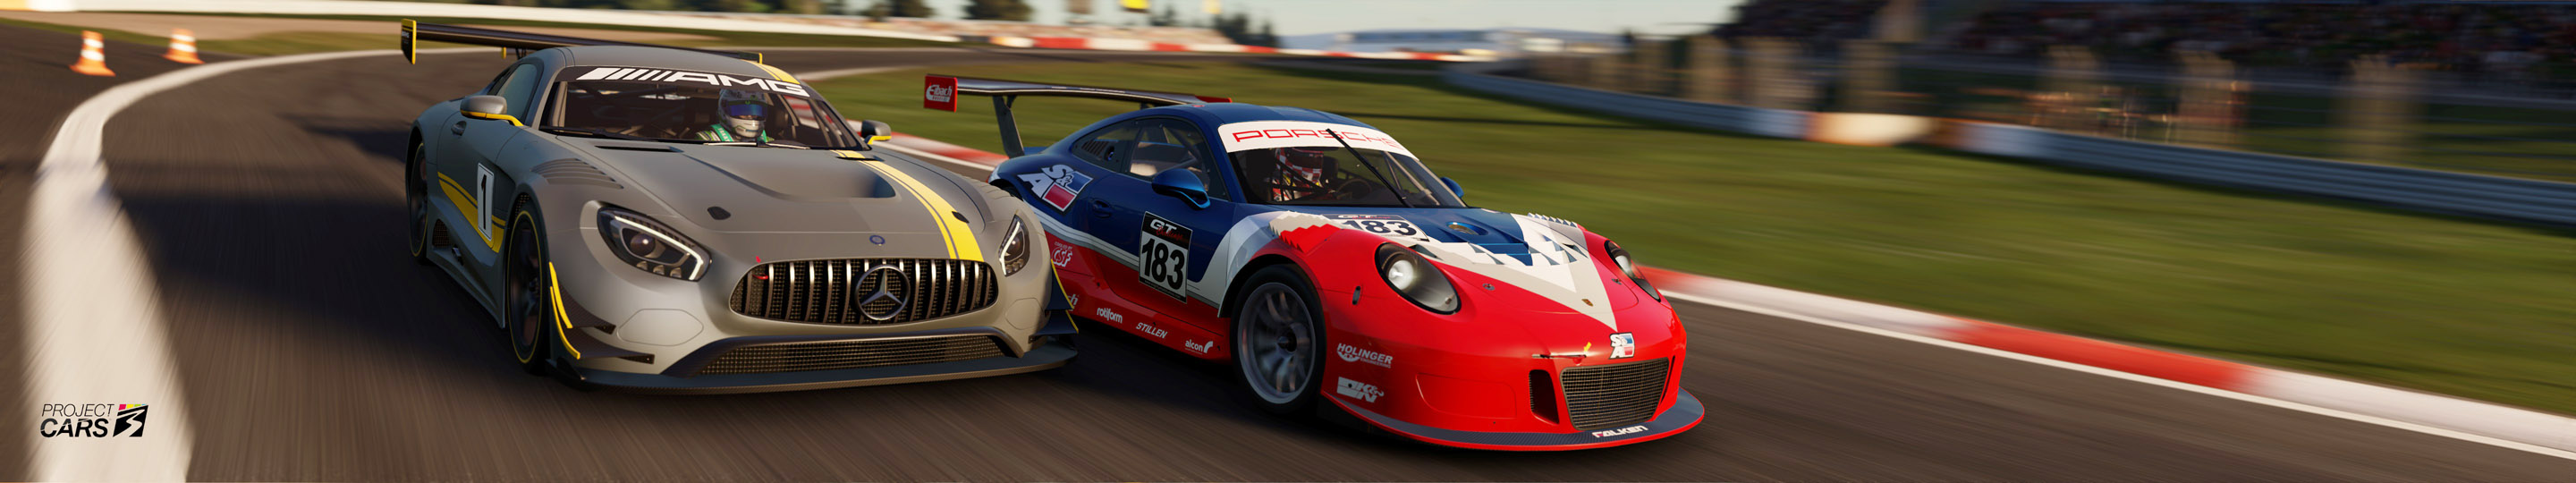 2 PROJECT CARS 3 PORSCHE 911 GT3 R at NURBURGRING copy.jpg